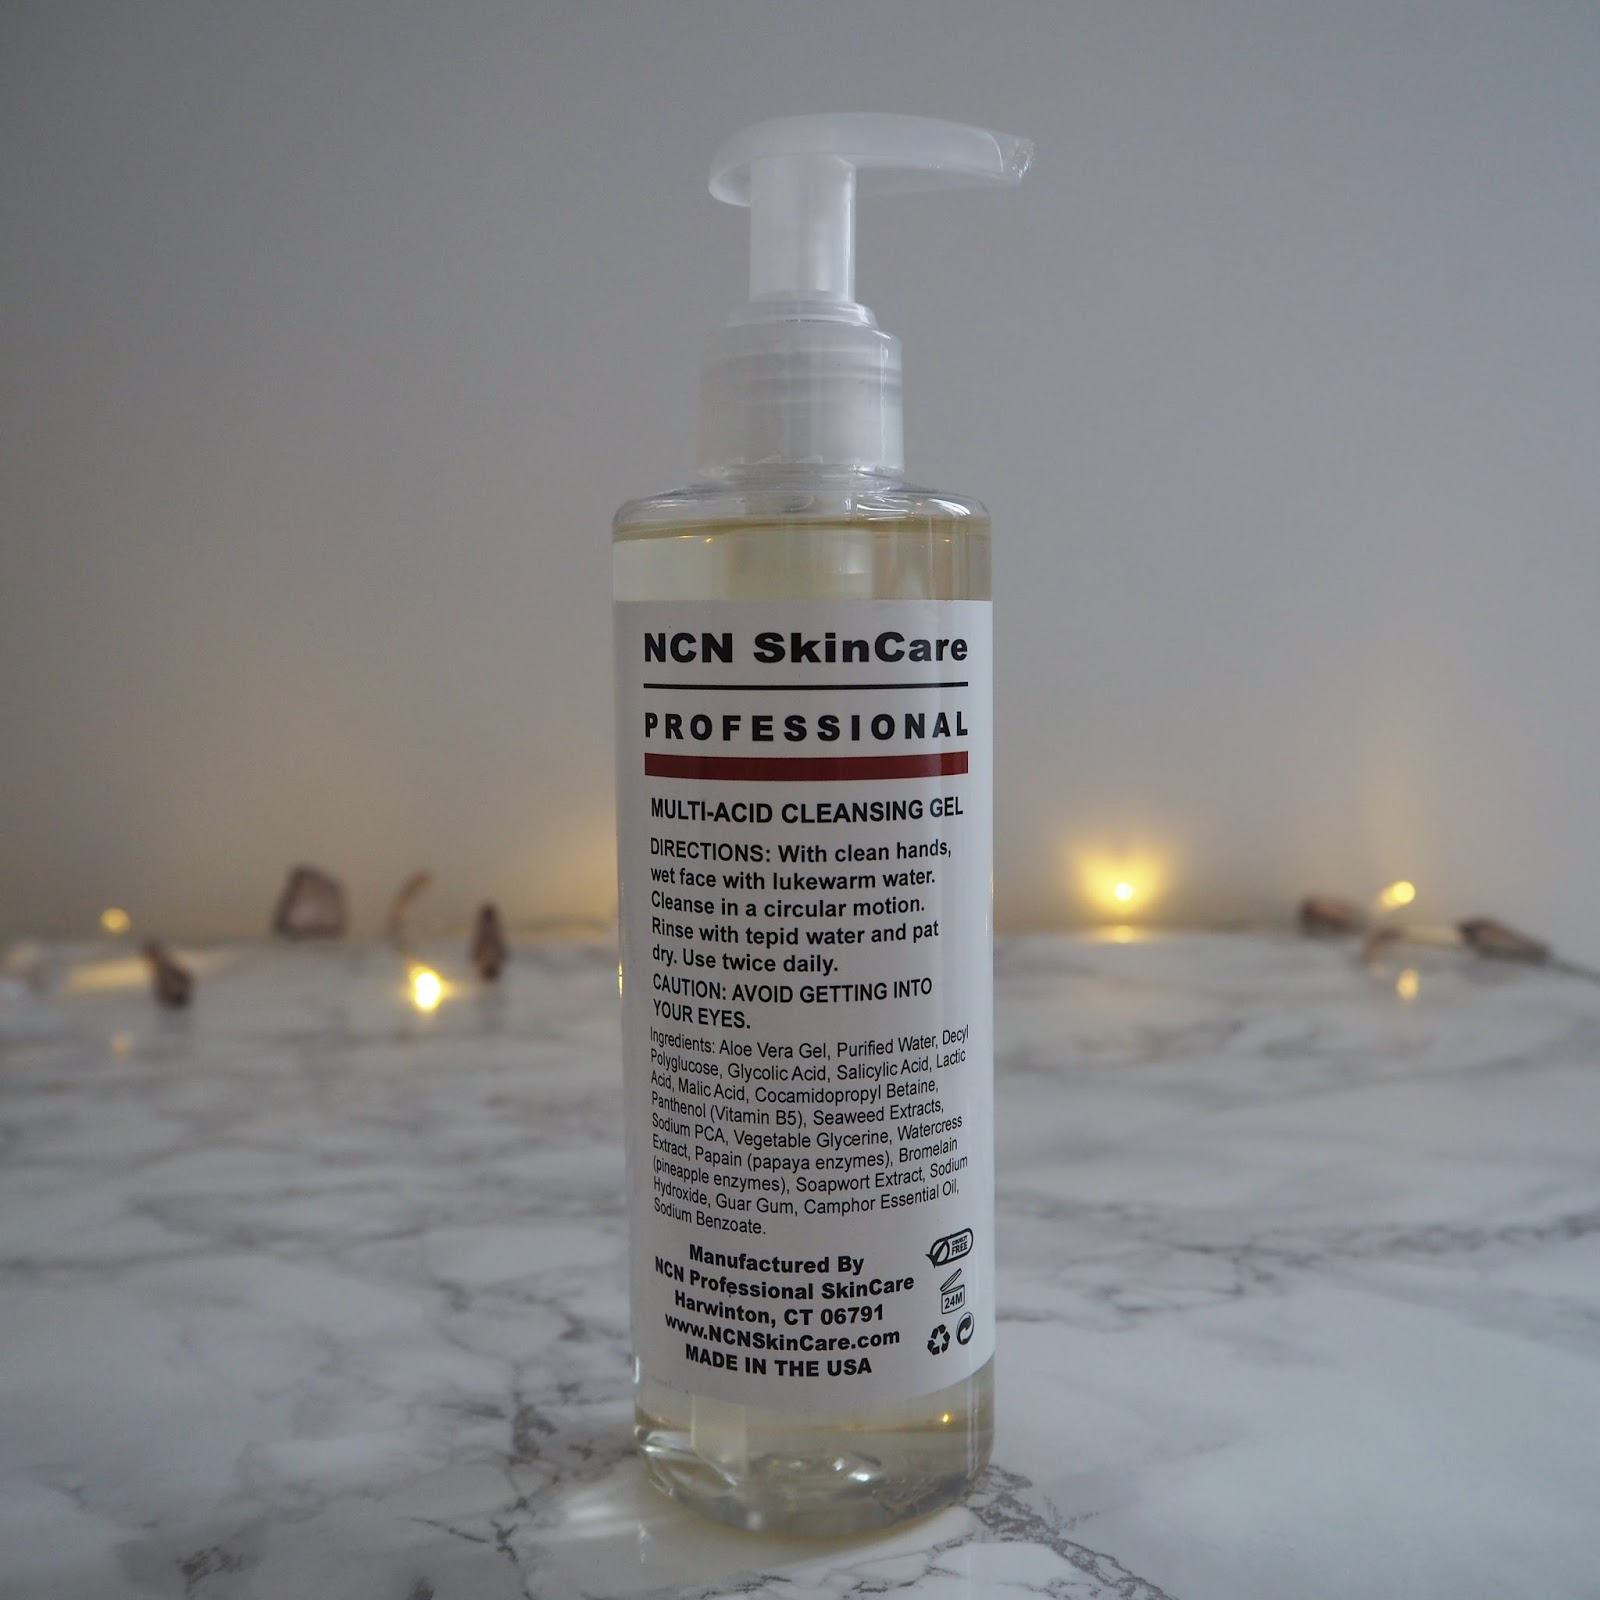 review of NCN skincare multi-acid cleansing gel, over 40 skincare